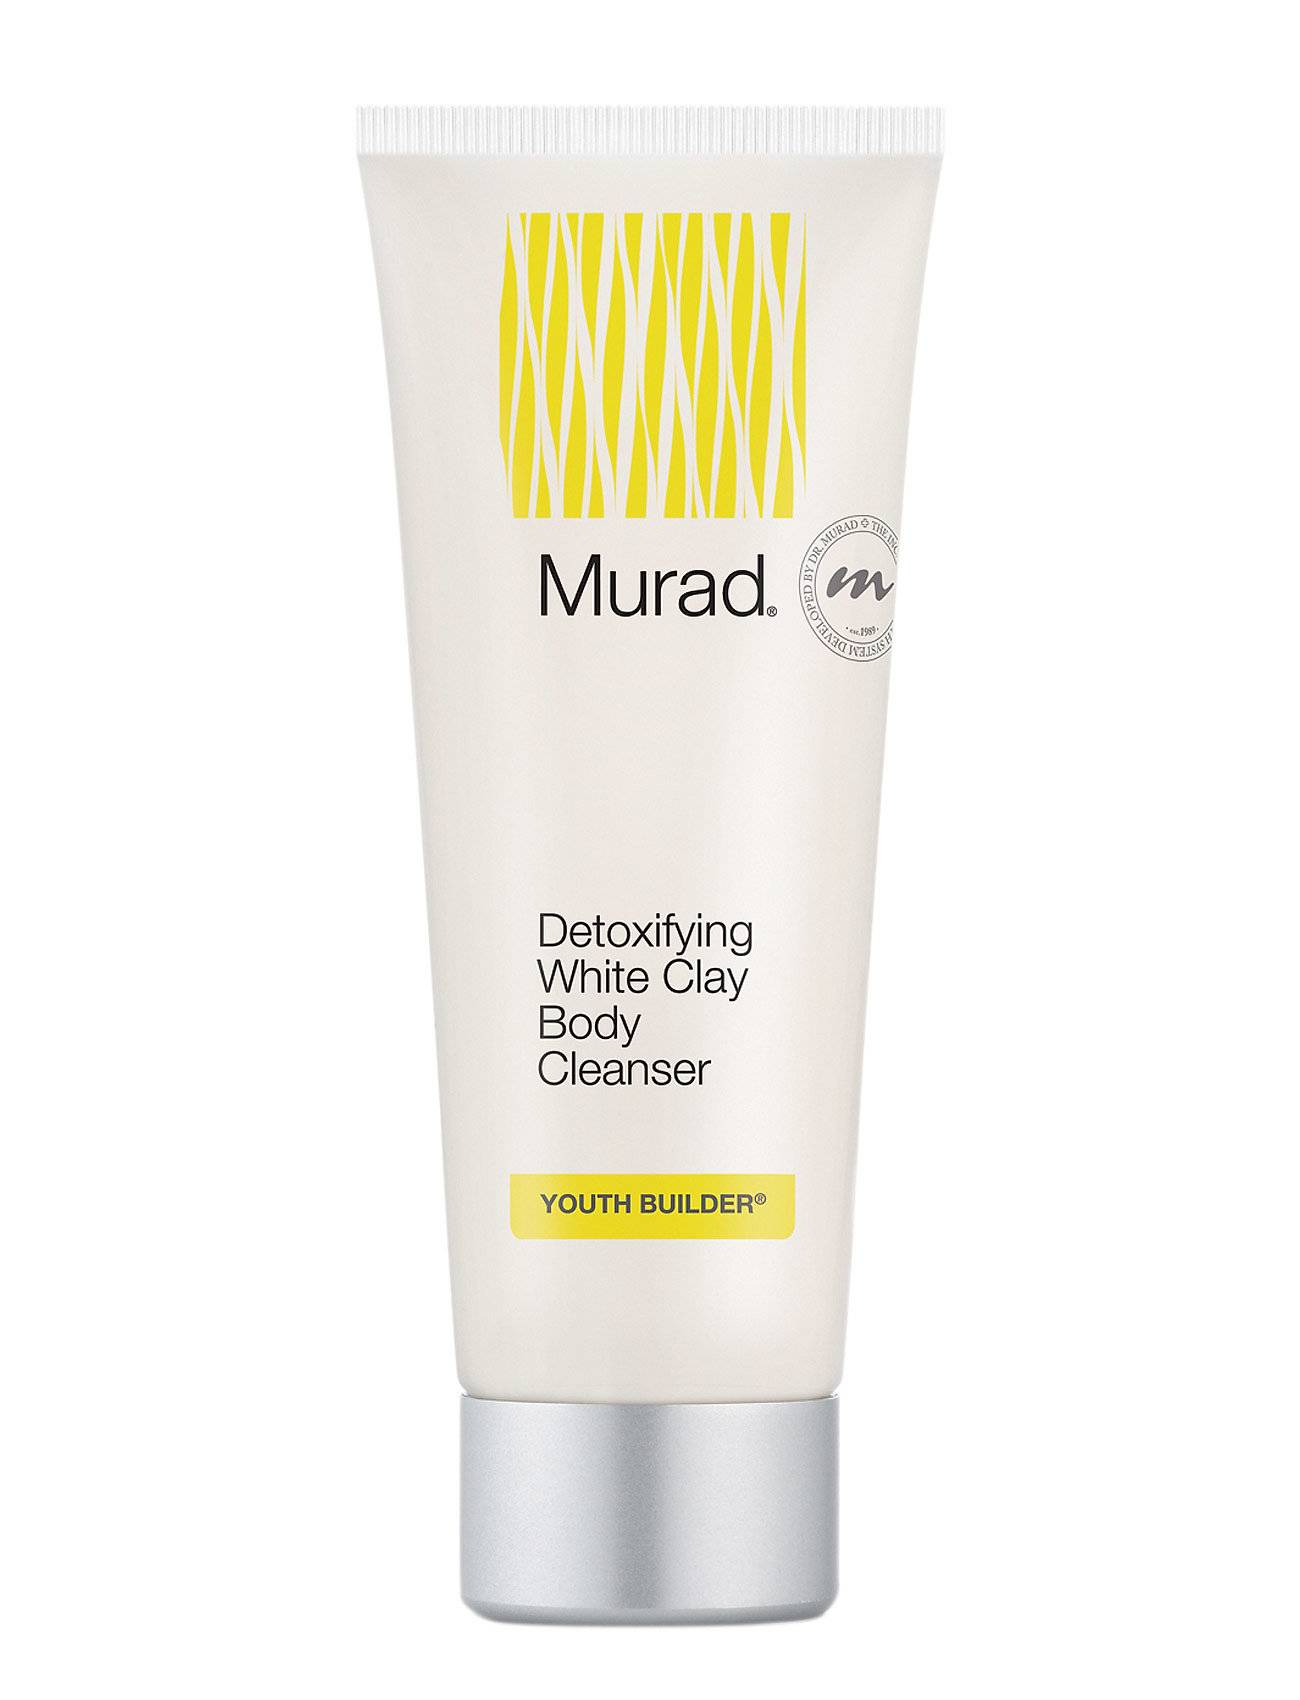 Murad Youth Bilder Detoxifying Body Cleanser